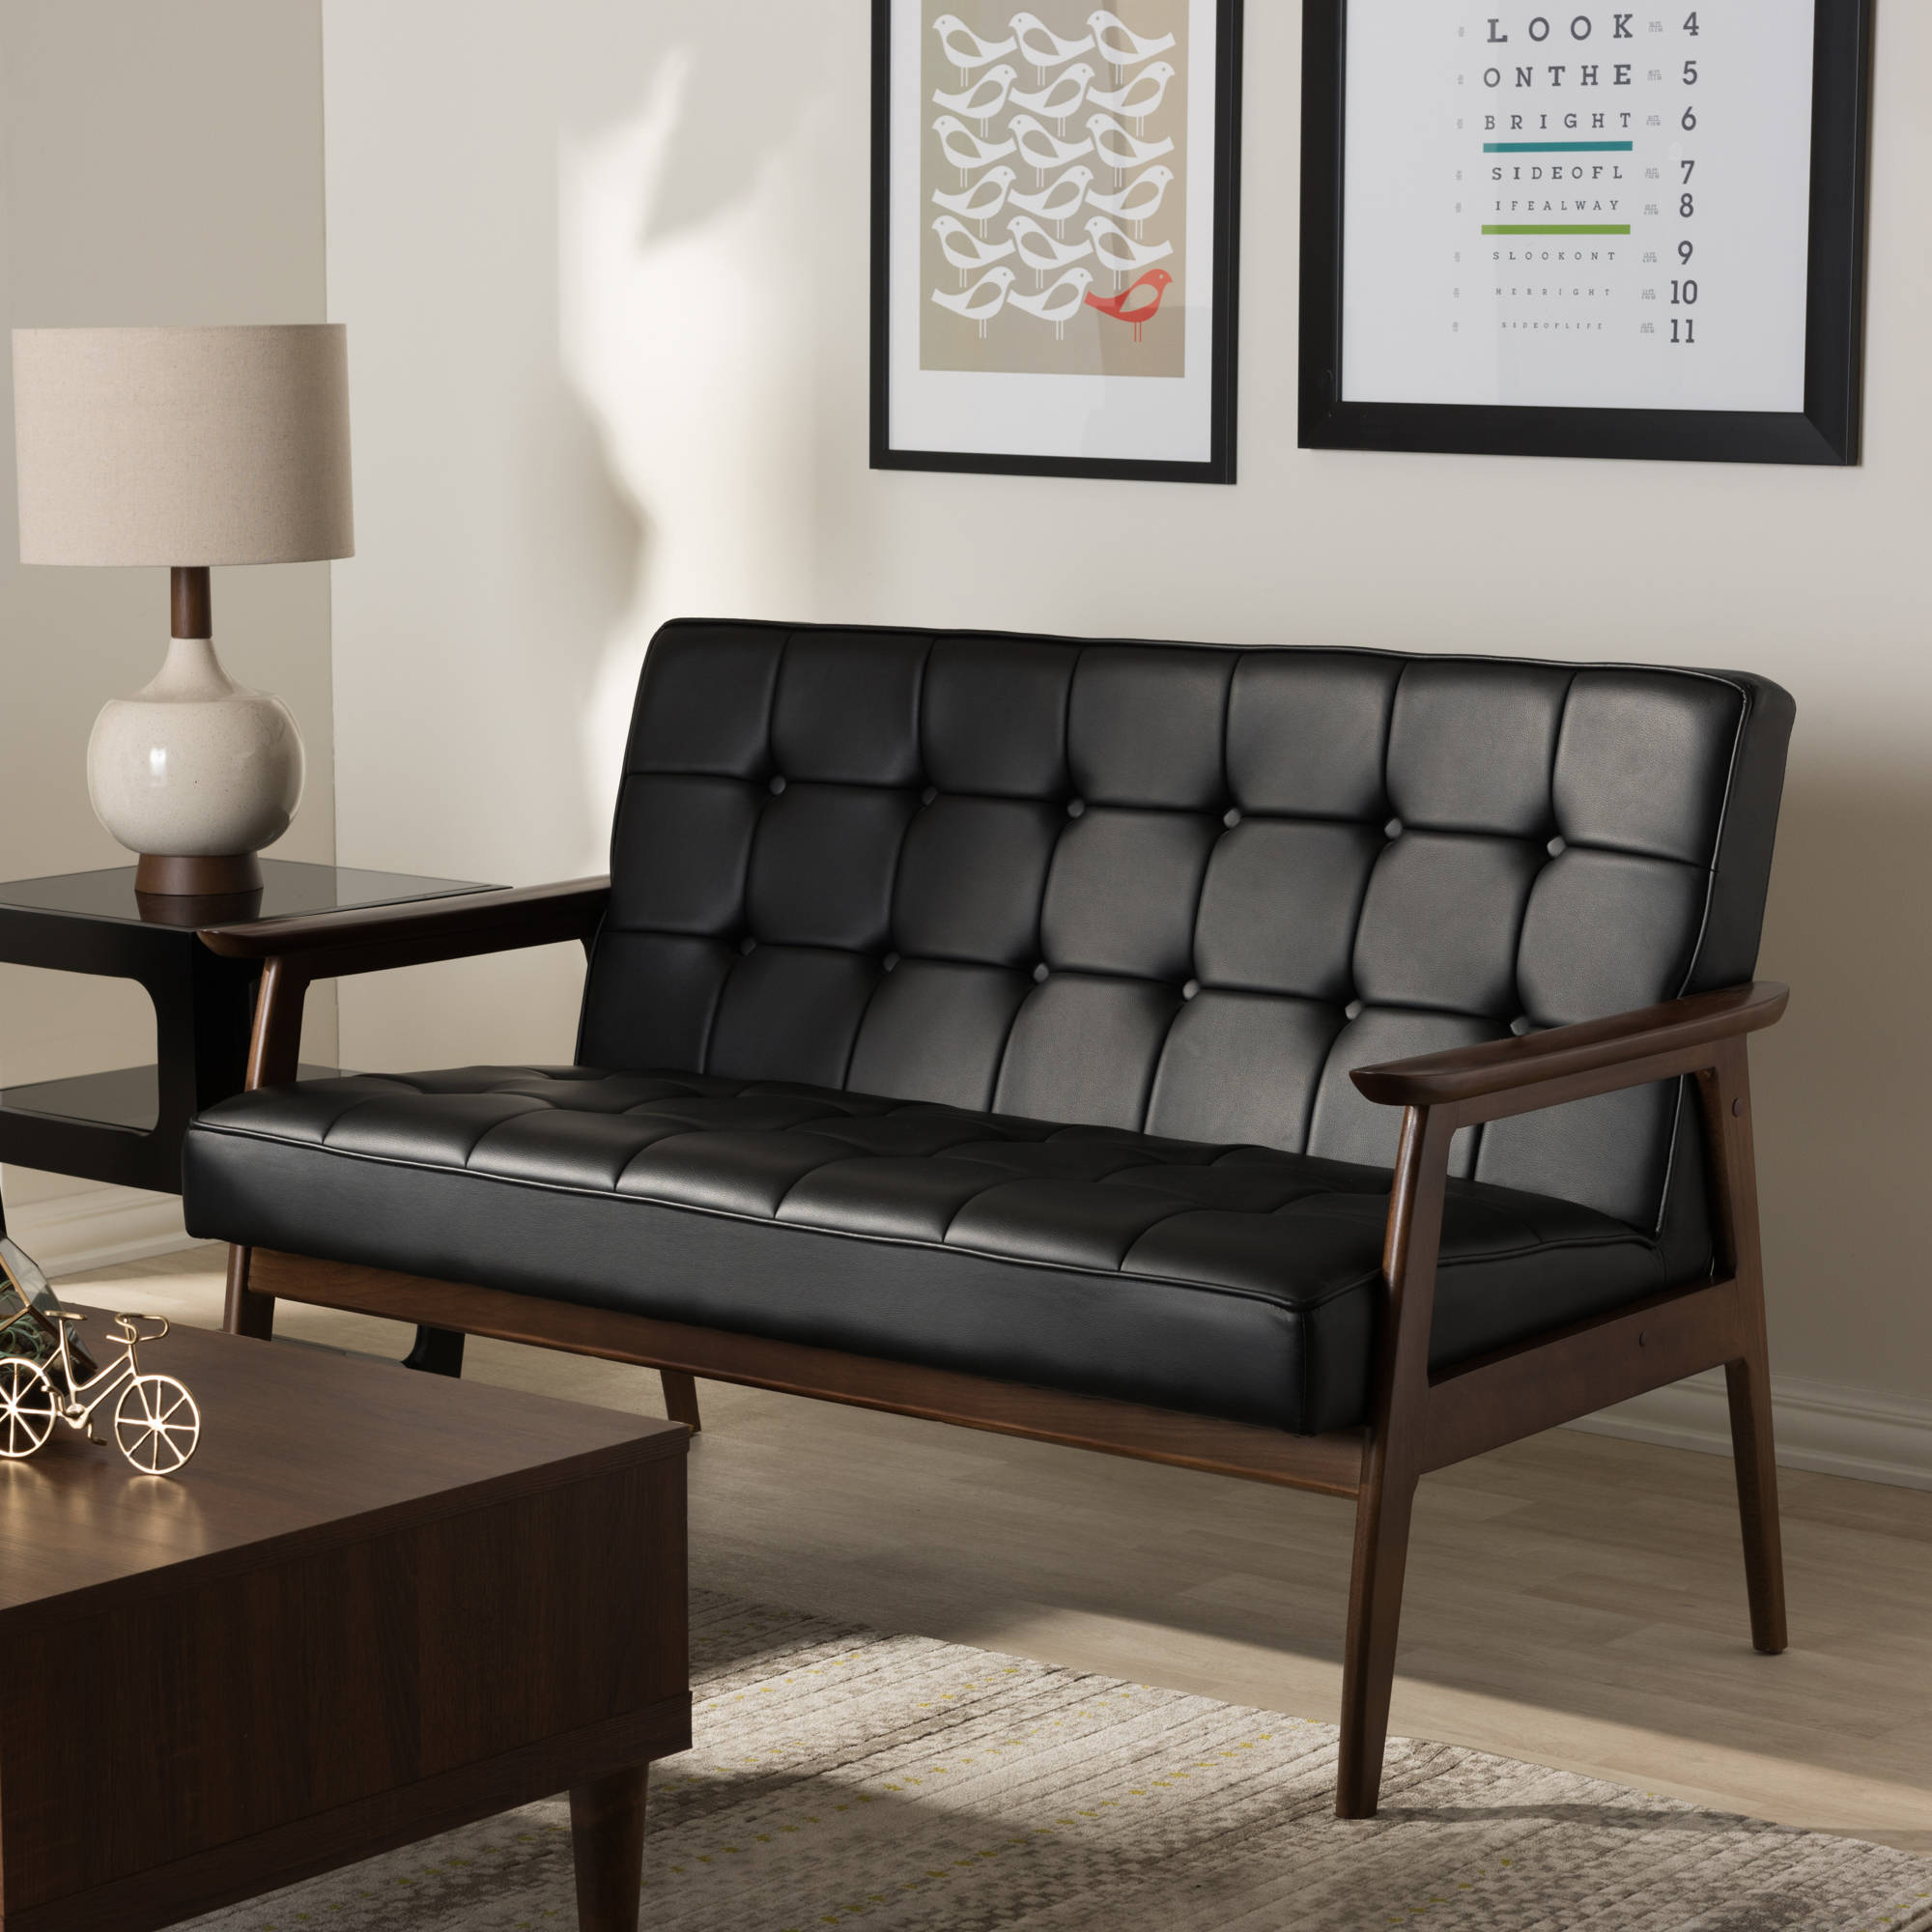 Pleasant Stratham Black Mid Century Modern Sofa Ibusinesslaw Wood Chair Design Ideas Ibusinesslaworg